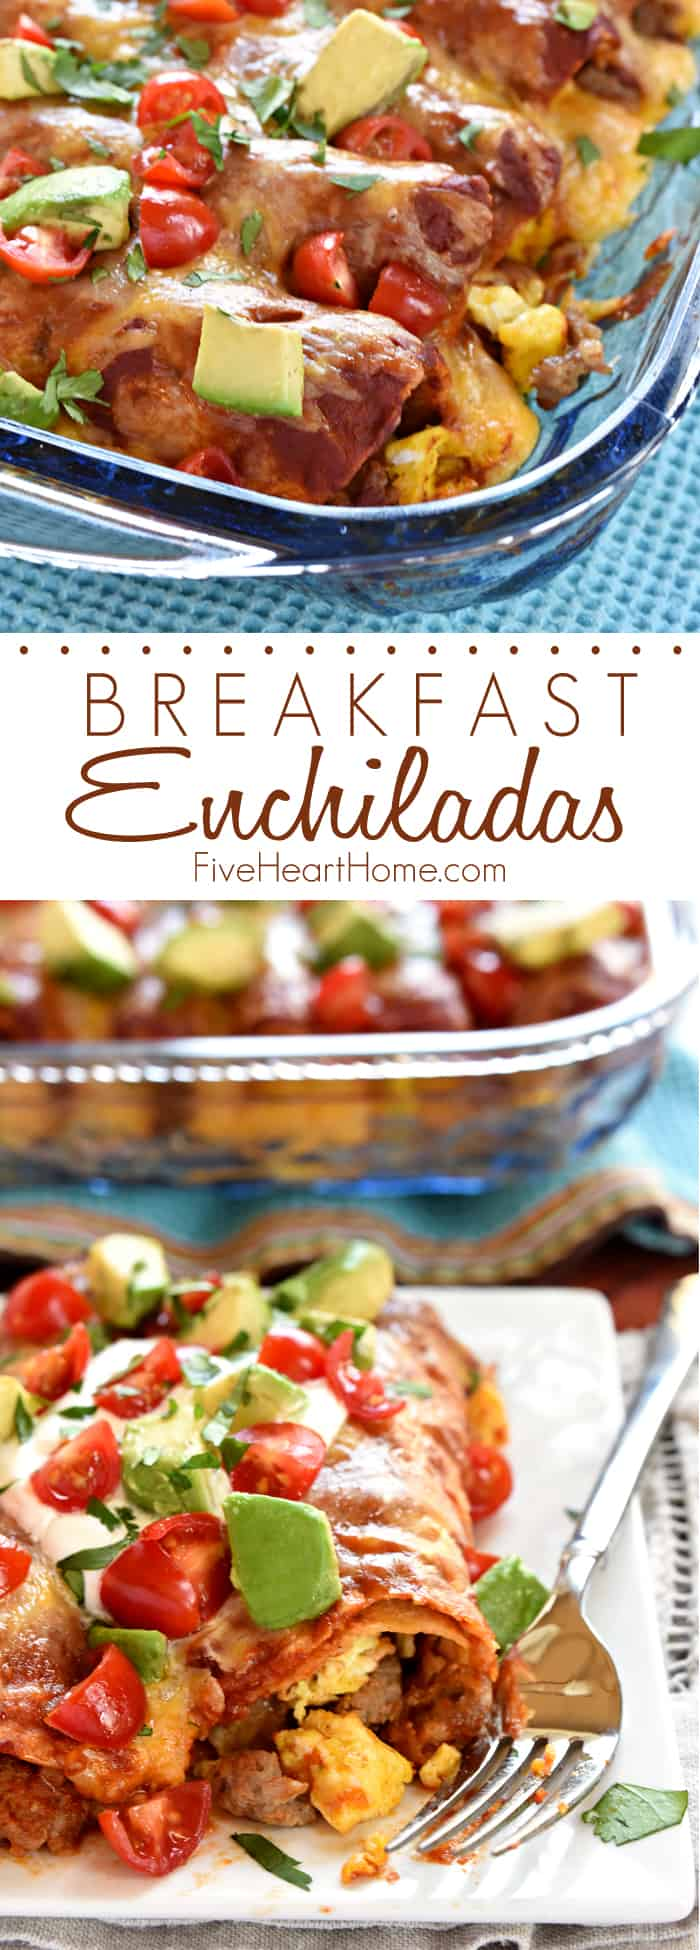 Breakfast Enchiladas ~ stuffed with sausage, eggs, and cheese, then topped with homemade red enchilada sauce, more cheese, and all of your favorite enchilada garnishes, these are even better than breakfast tacos! | FiveHeartHome.com via @fivehearthome